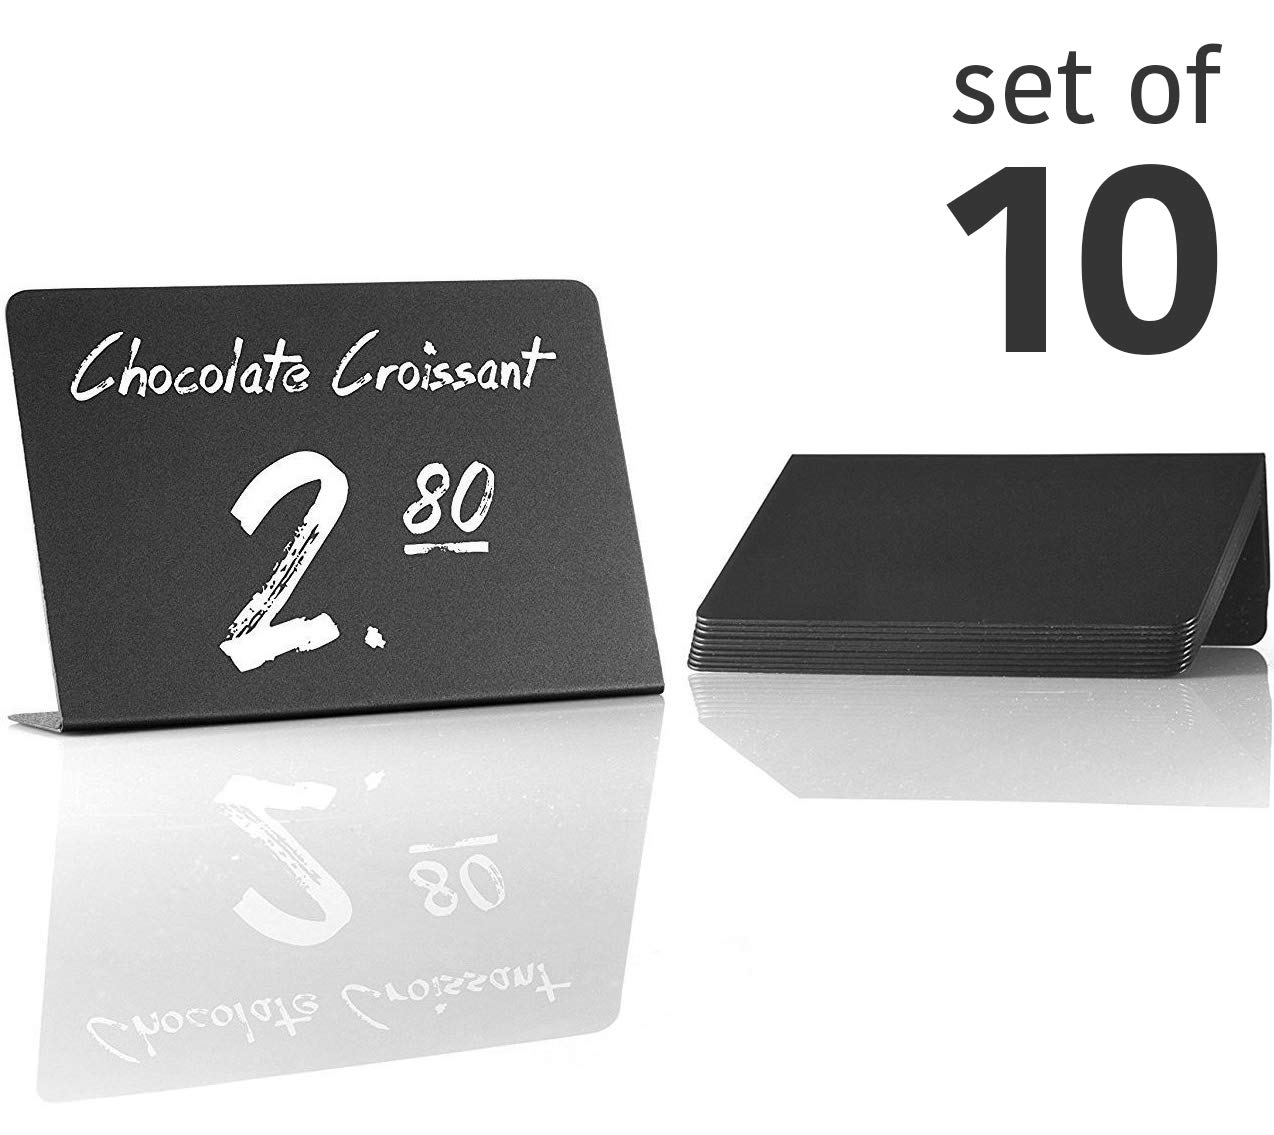 10 Pack Rustic Mini Chalkboard Signs - Easy To Write And Wipe Out - For Liquid Chalk Markers And Chalk - Small Plastic Message Board Signs - Table Numbers - Food Labels For Party - Small Chalkboard